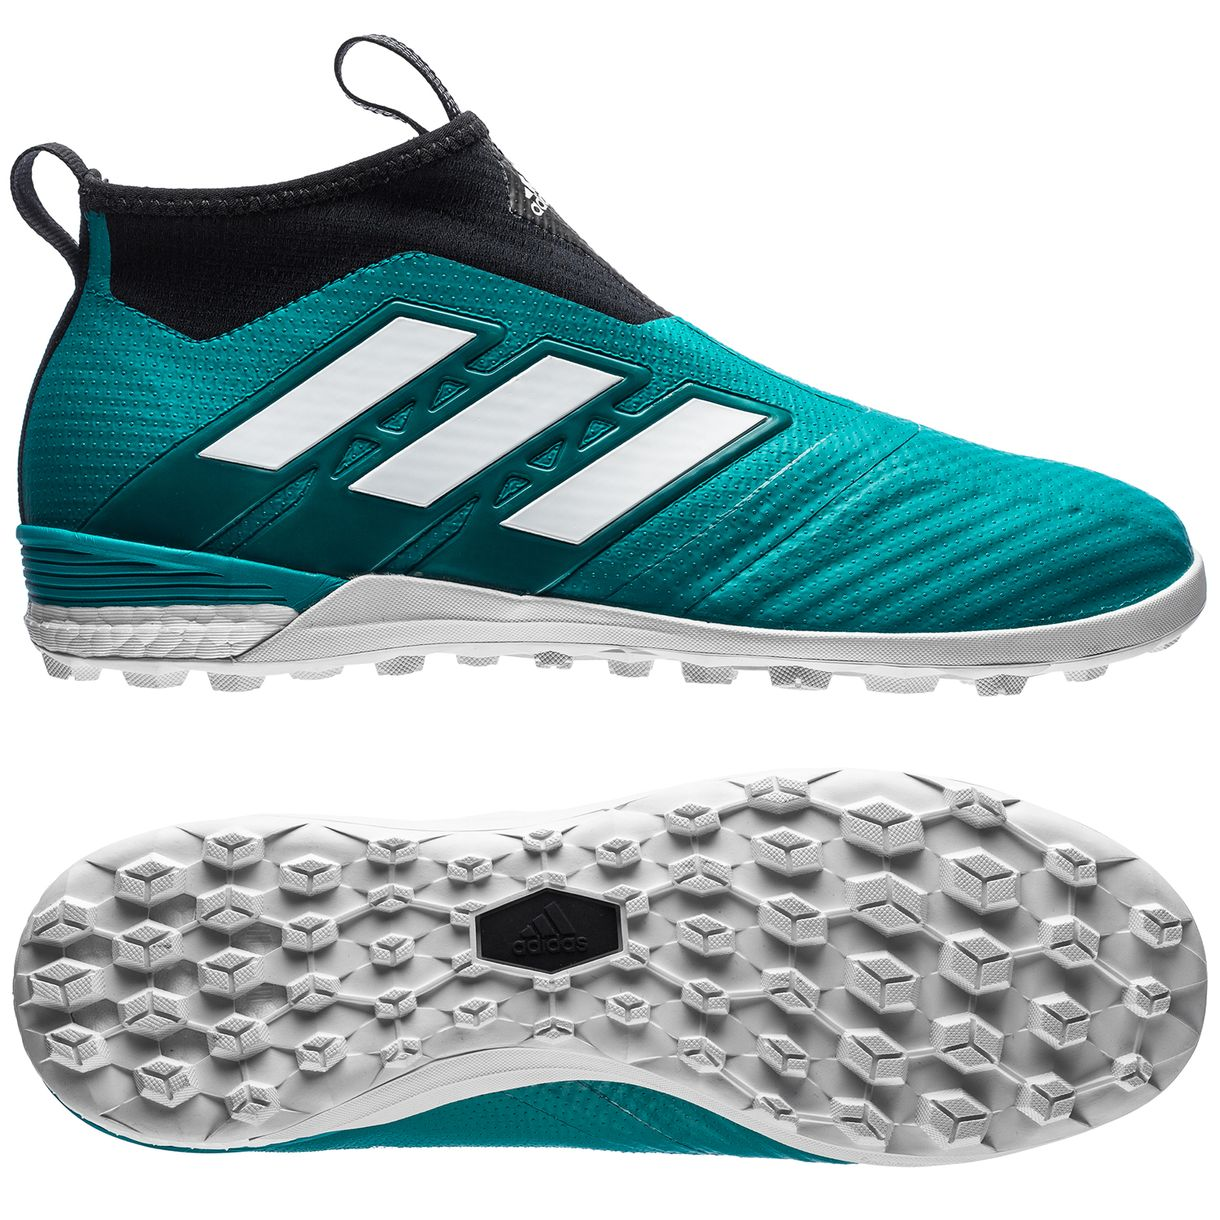 save off 0a650 9488f Adidas ACE Tango 17+ PureControl Boost TF EQT Green Pack ...